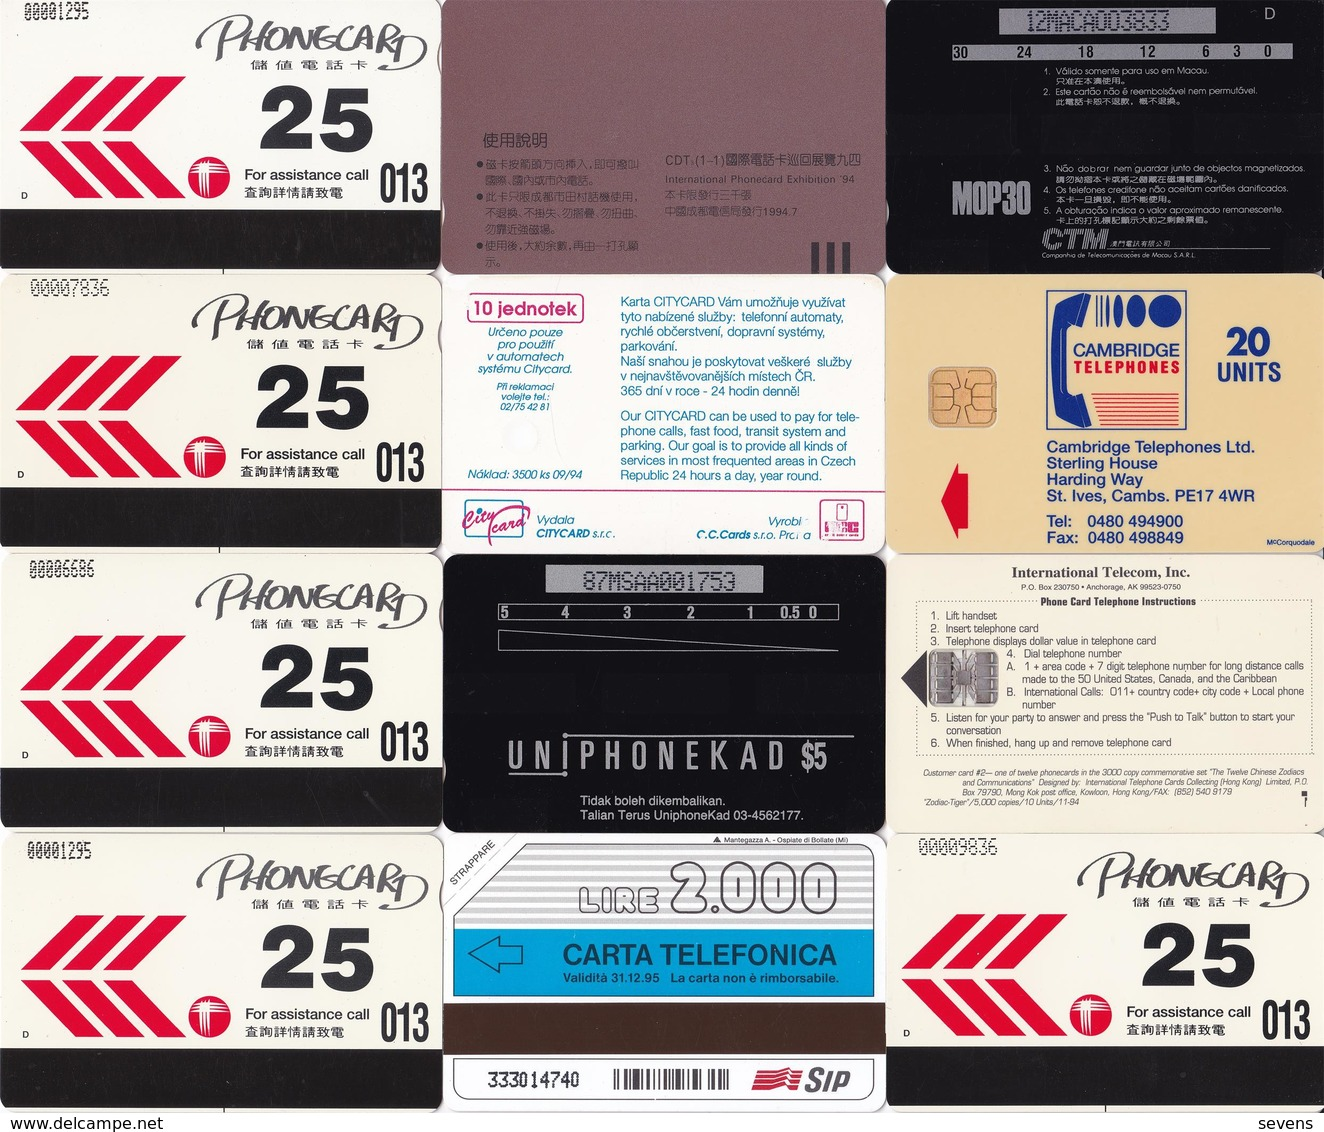 Joint Issued, 12 Horoscope Set, International Phonecards, Exhibiton 94', Mint, Special Price,see Description - Phonecards